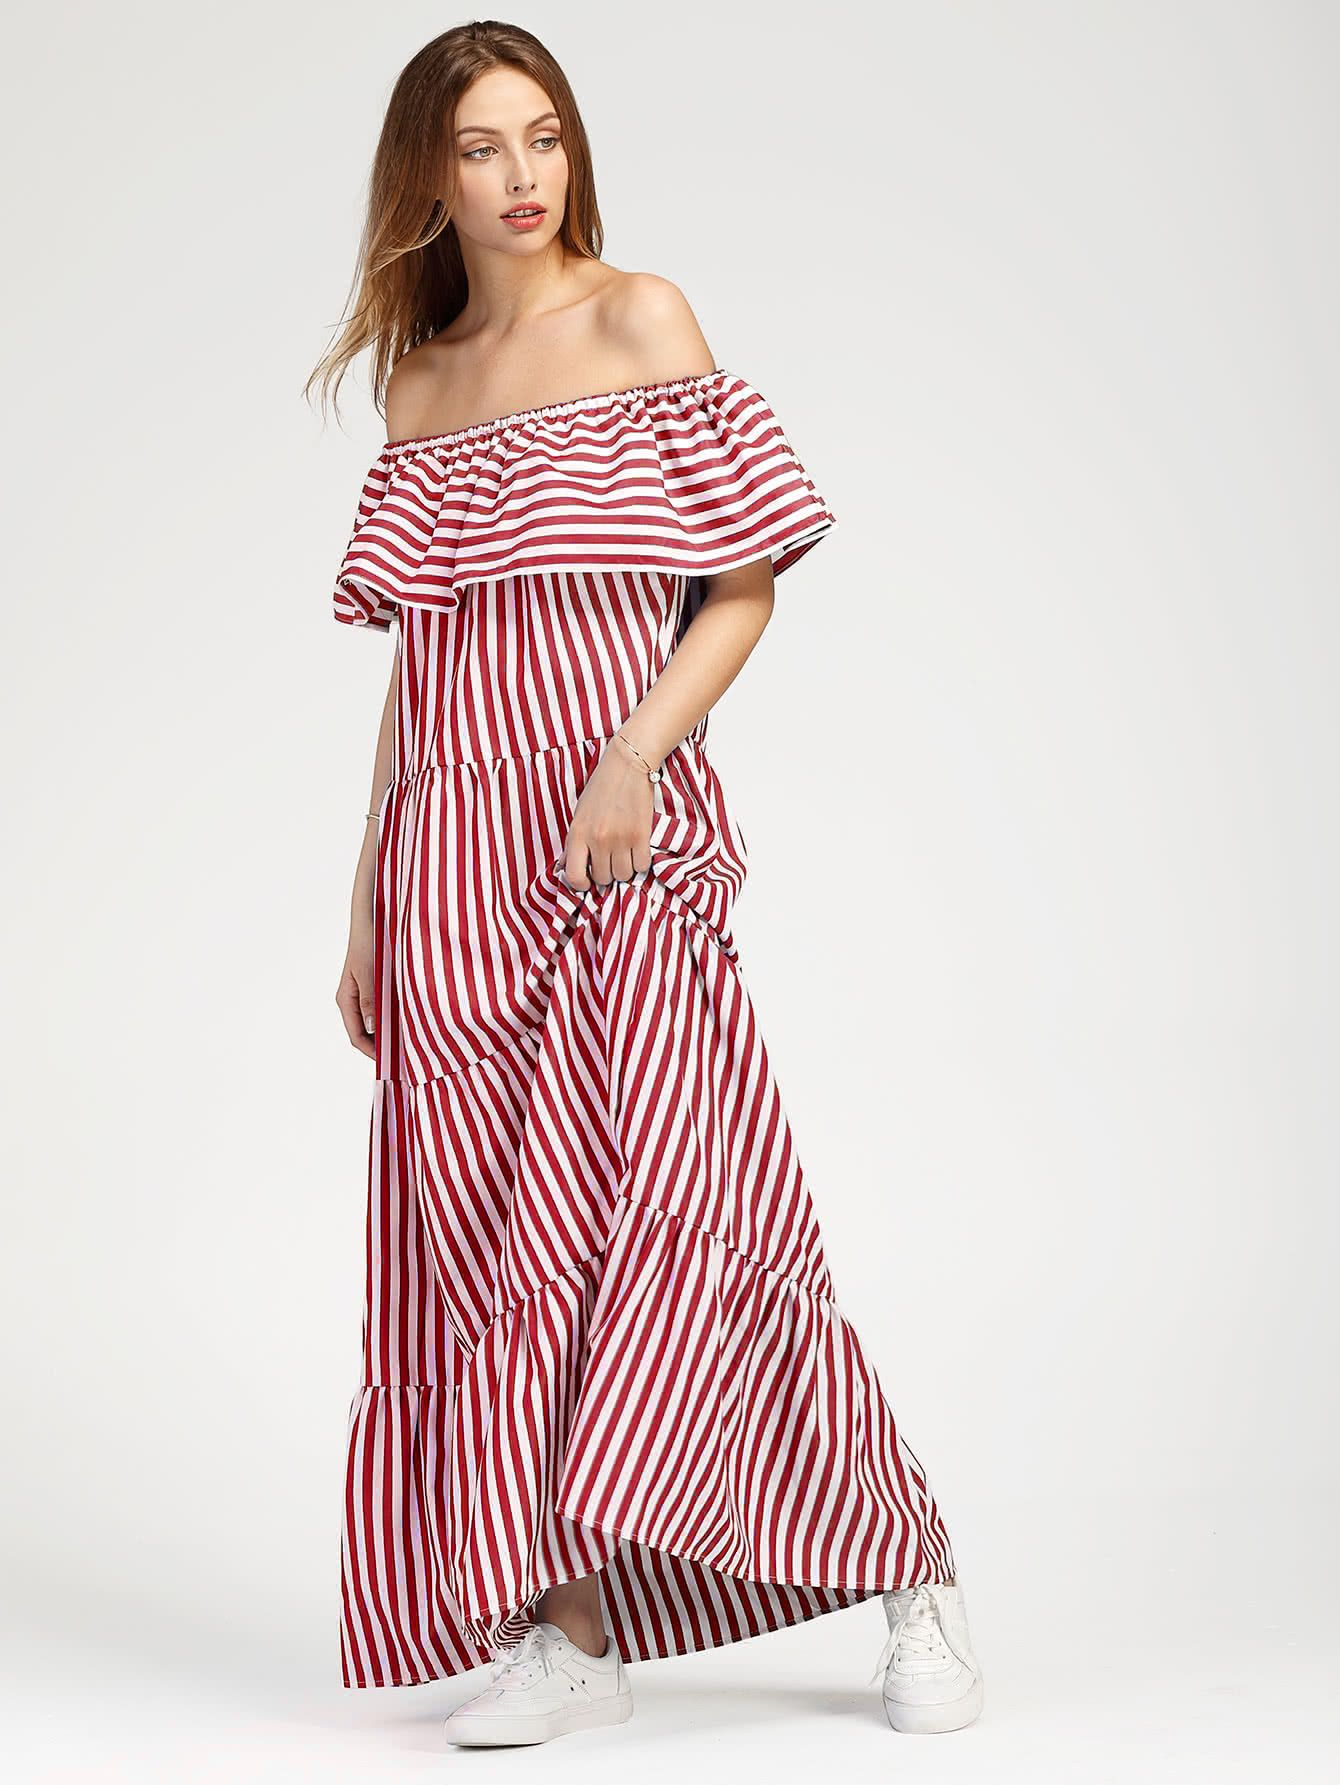 Shop Contrast Striped Flounce Layered Tiered Peasant Dress Online Shein Offers Contrast Striped Flounce Layered Womens Dresses Casual Day Dresses Tiered Dress [ 1785 x 1340 Pixel ]